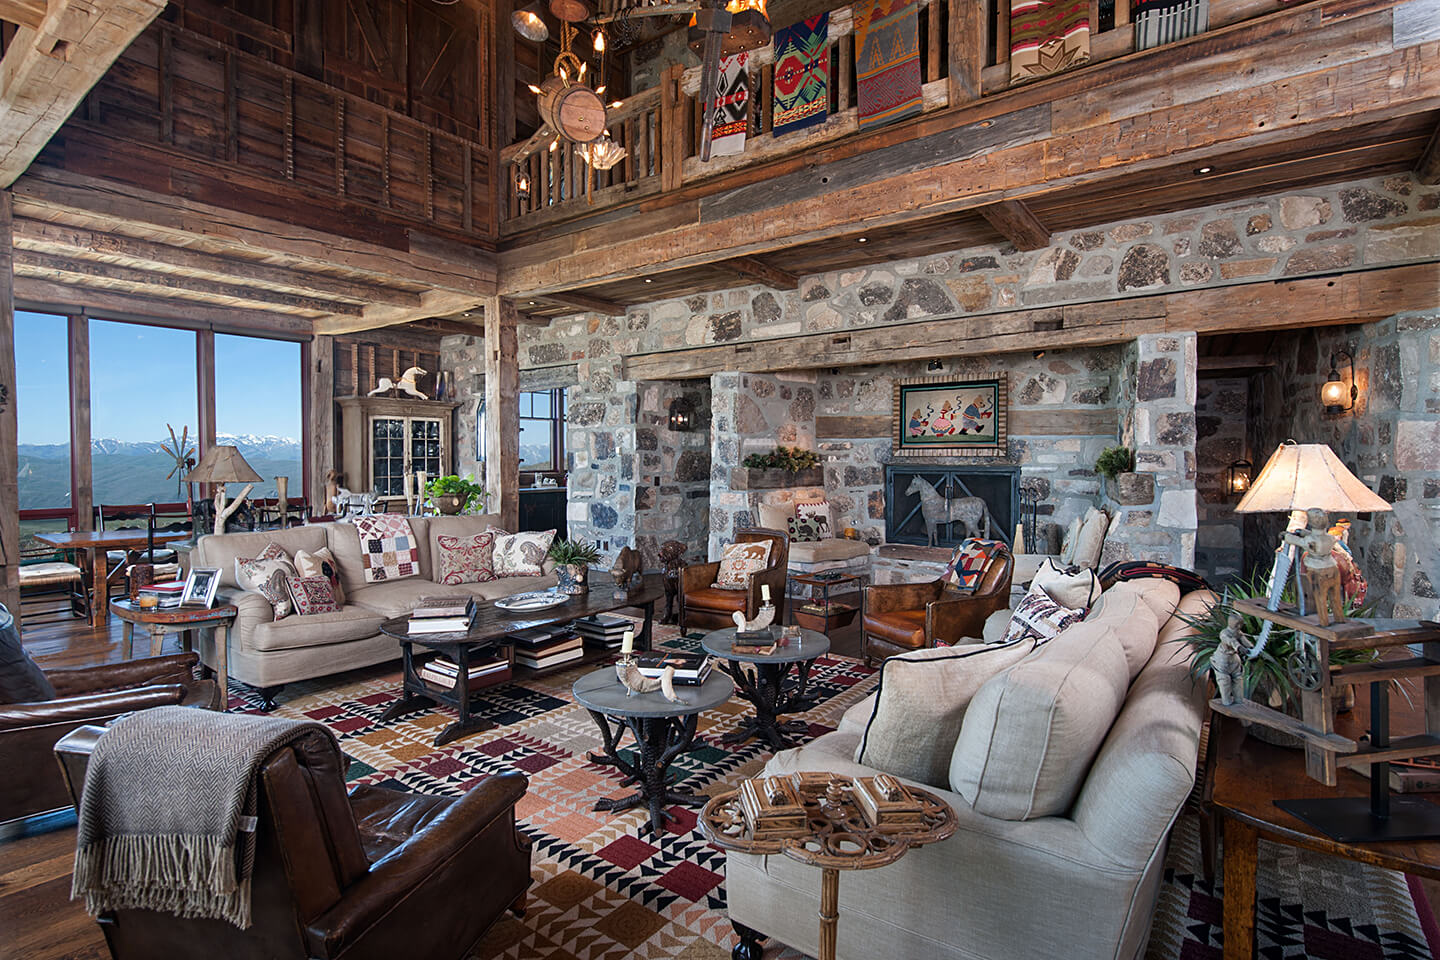 Living room with native stone walls